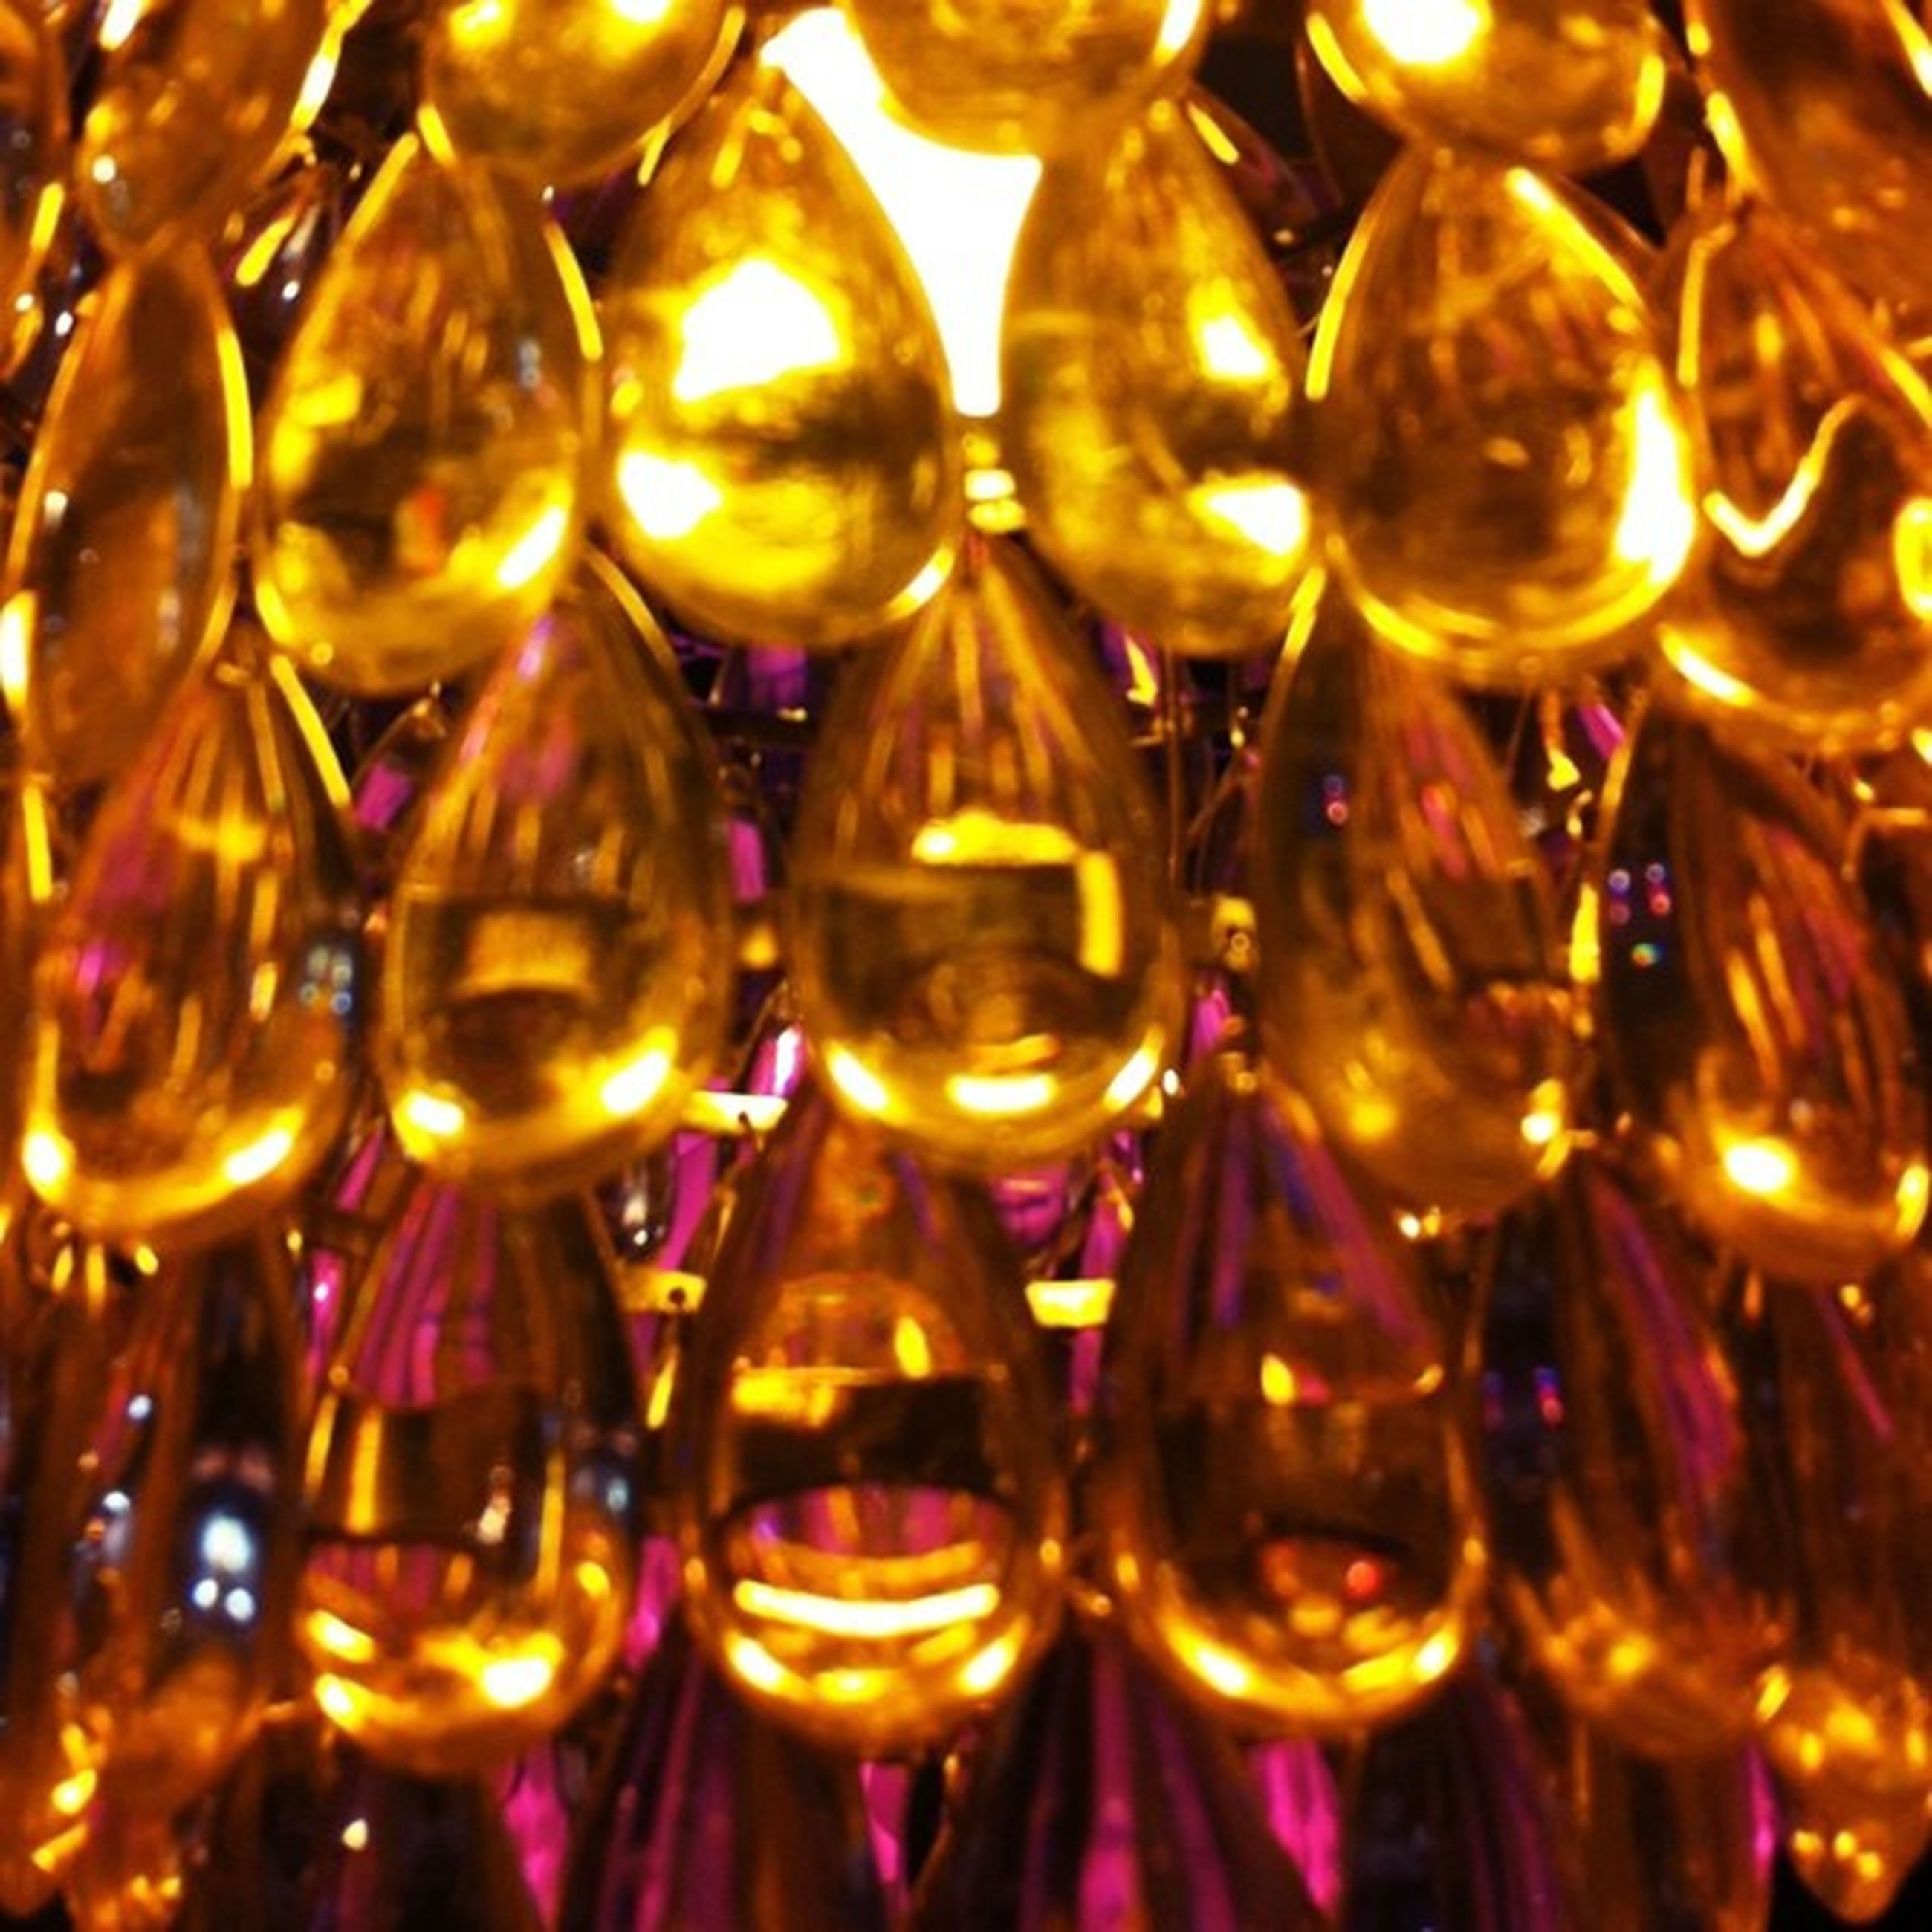 illuminated, multi colored, indoors, lighting equipment, decoration, celebration, abundance, glass - material, full frame, large group of objects, close-up, in a row, backgrounds, variation, transparent, tradition, shiny, christmas decoration, christmas lights, colorful